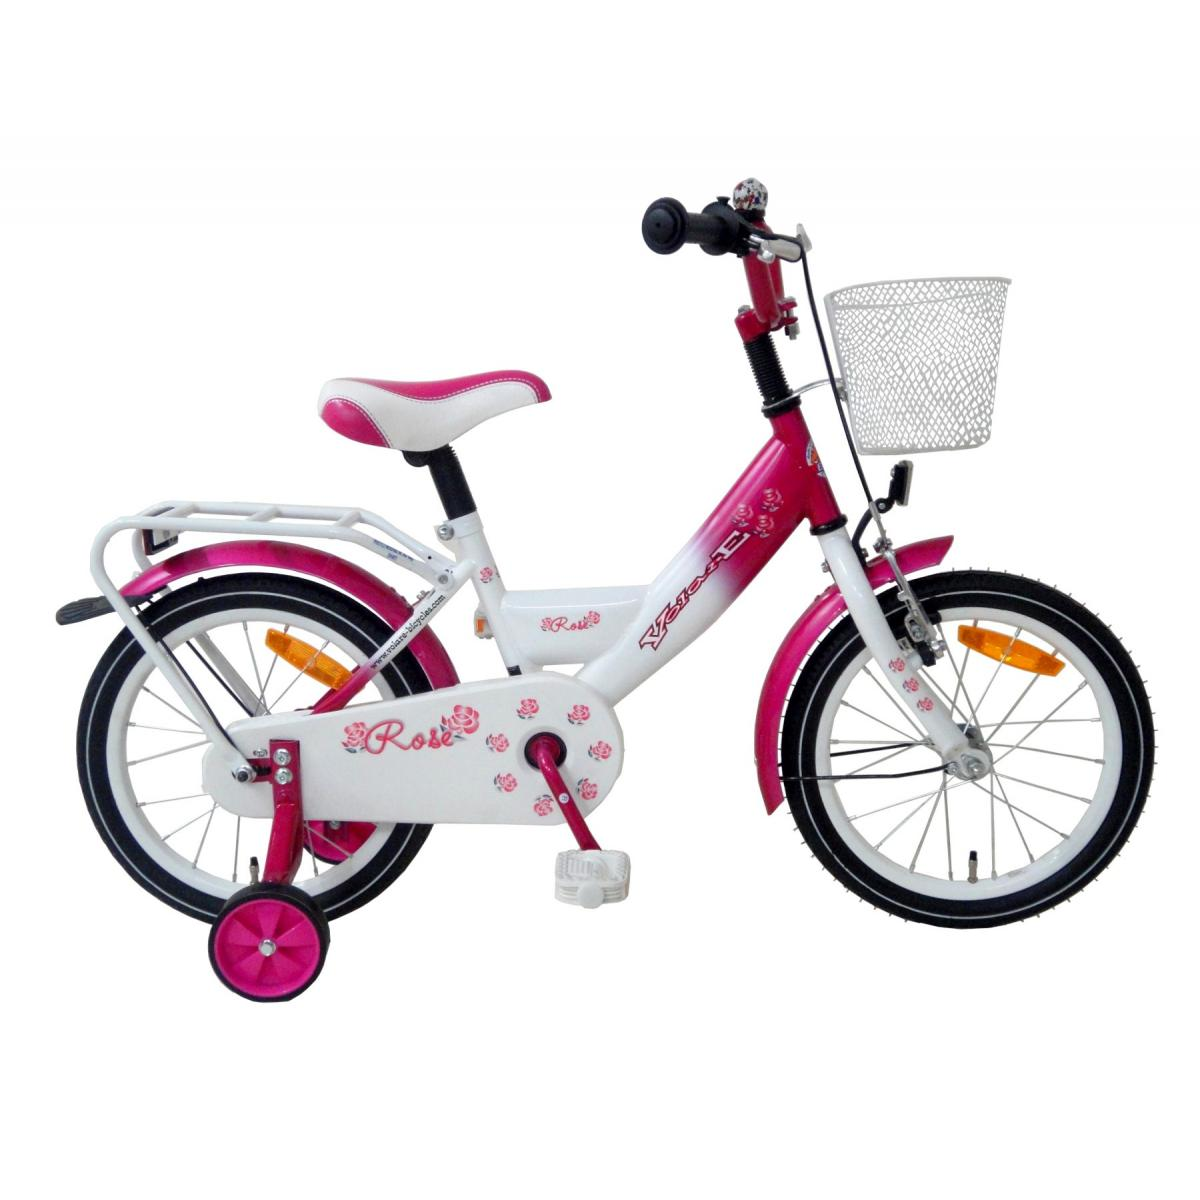 16 zoll kinderfahrrad m dchen volare rose kinder fahrrad pink wei ebay. Black Bedroom Furniture Sets. Home Design Ideas